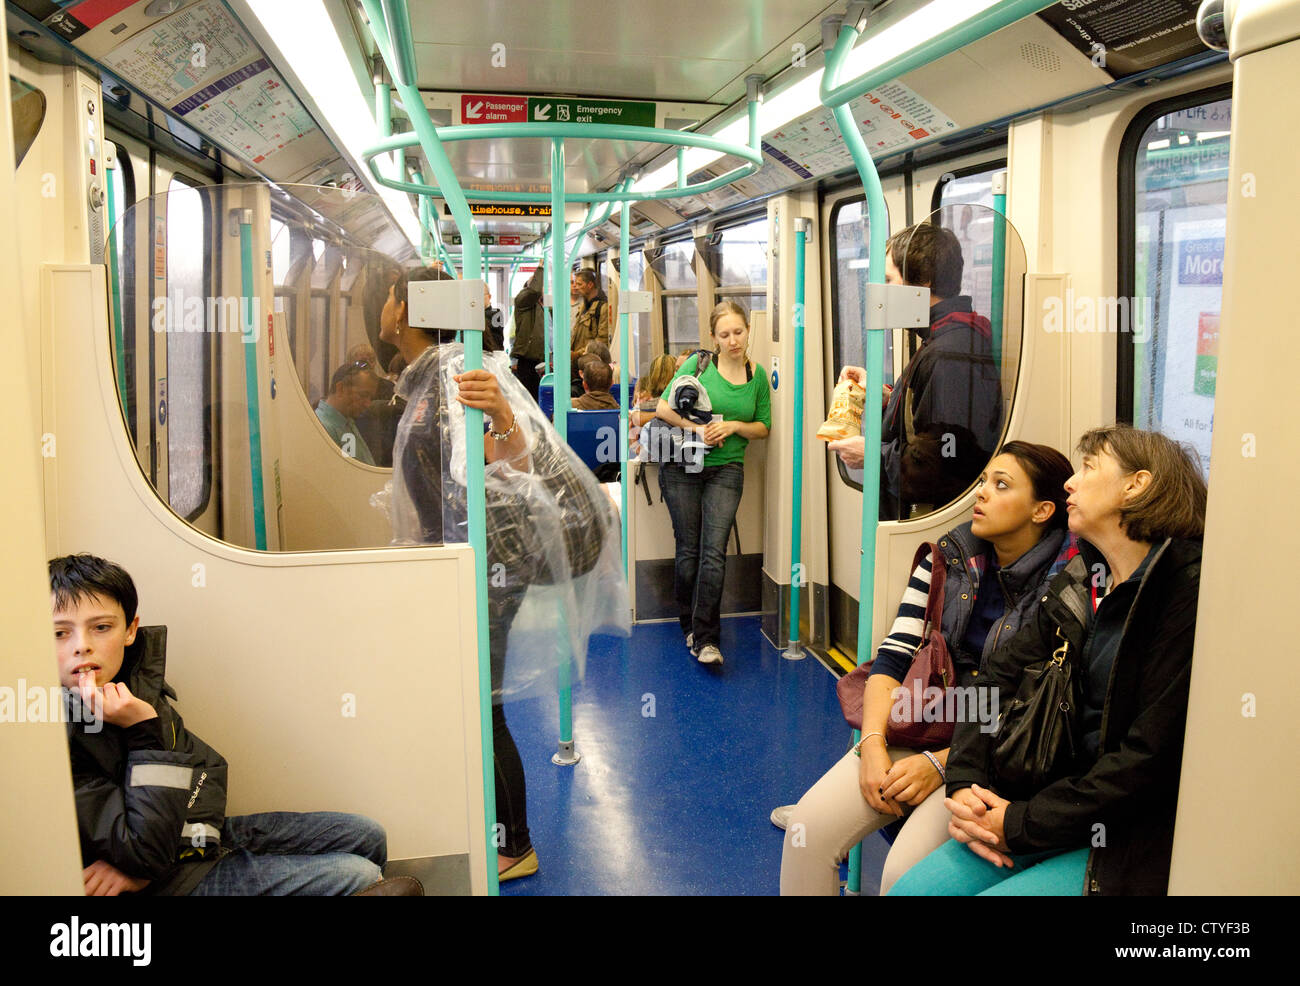 Passengers inside a carriage of a train, London Docklands Light Railway (DLR); London UK - Stock Image